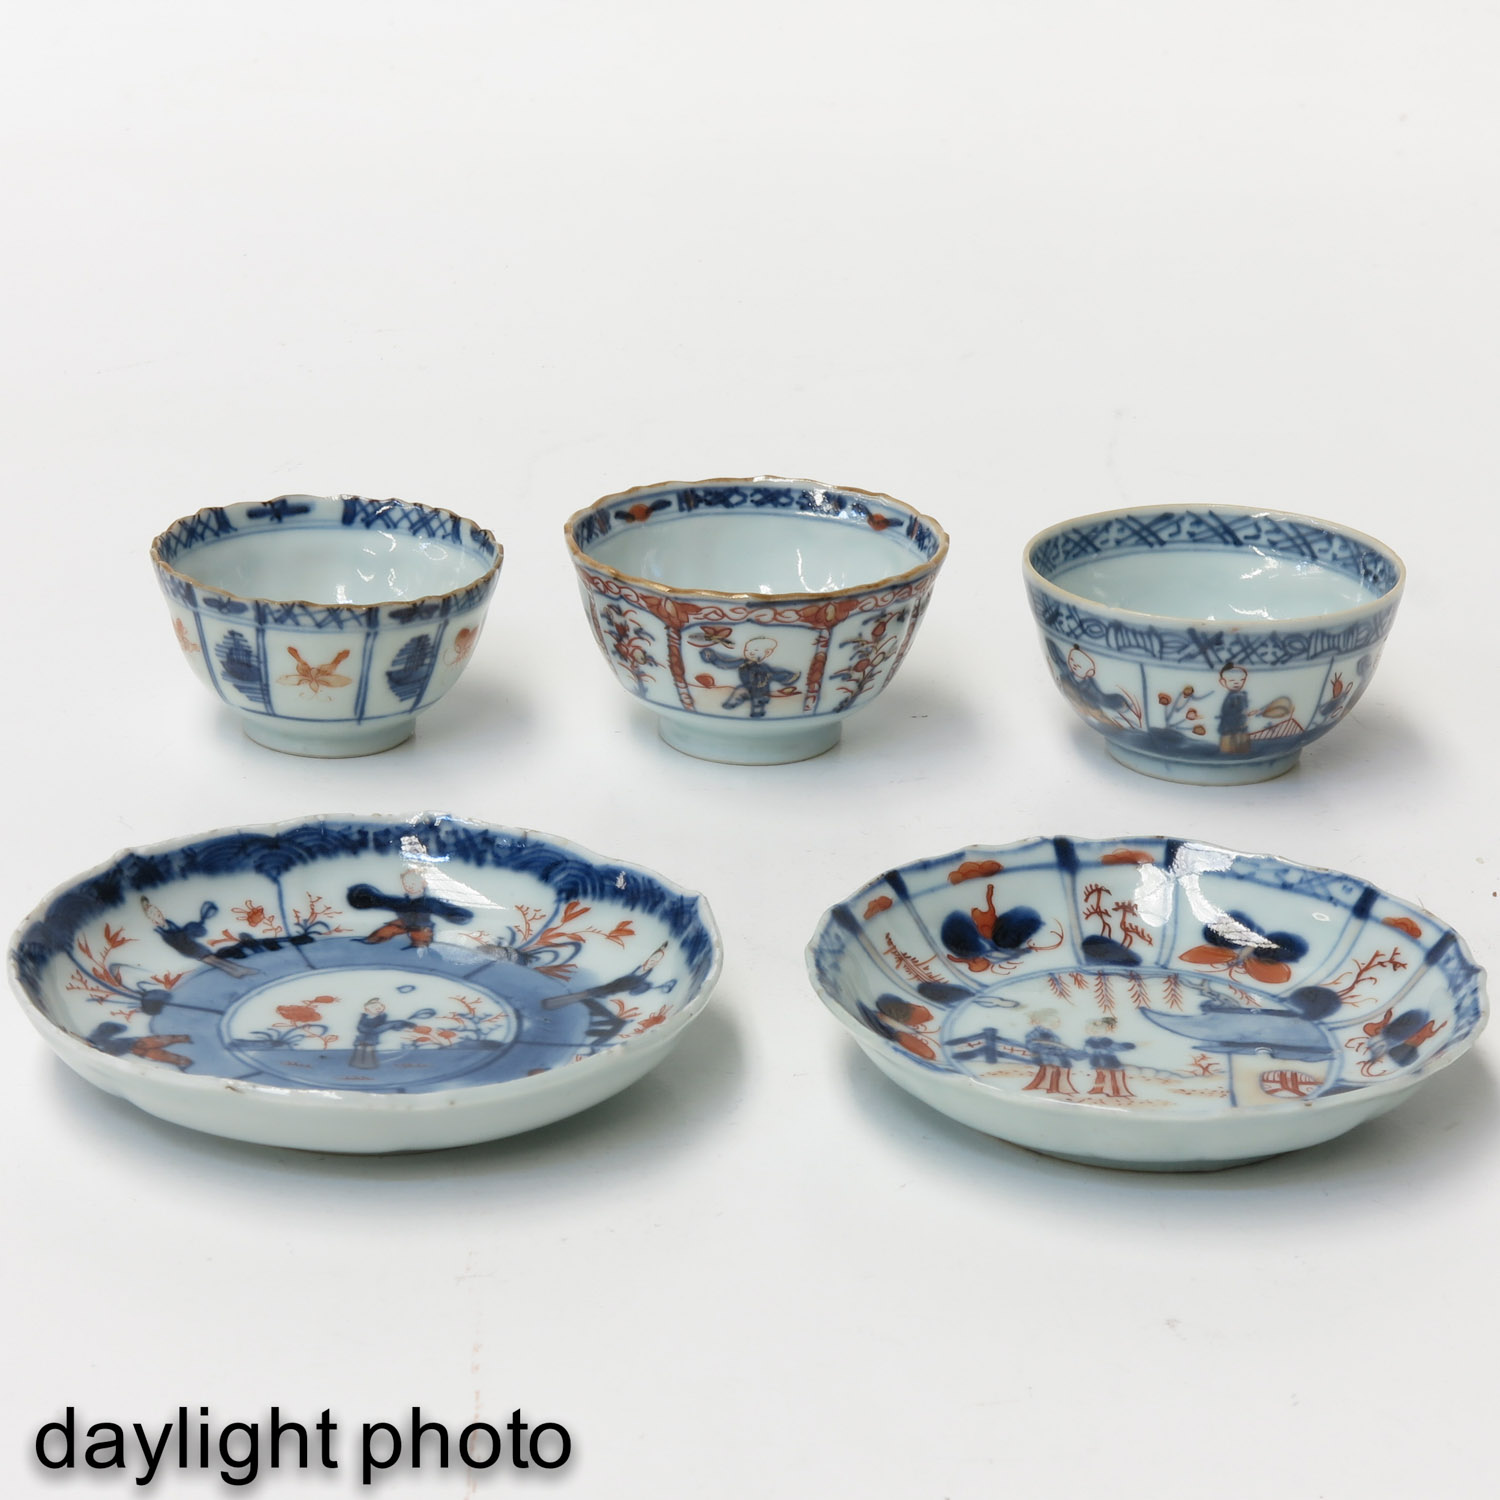 A Lot of 5 Cups and Saucers - Image 9 of 10